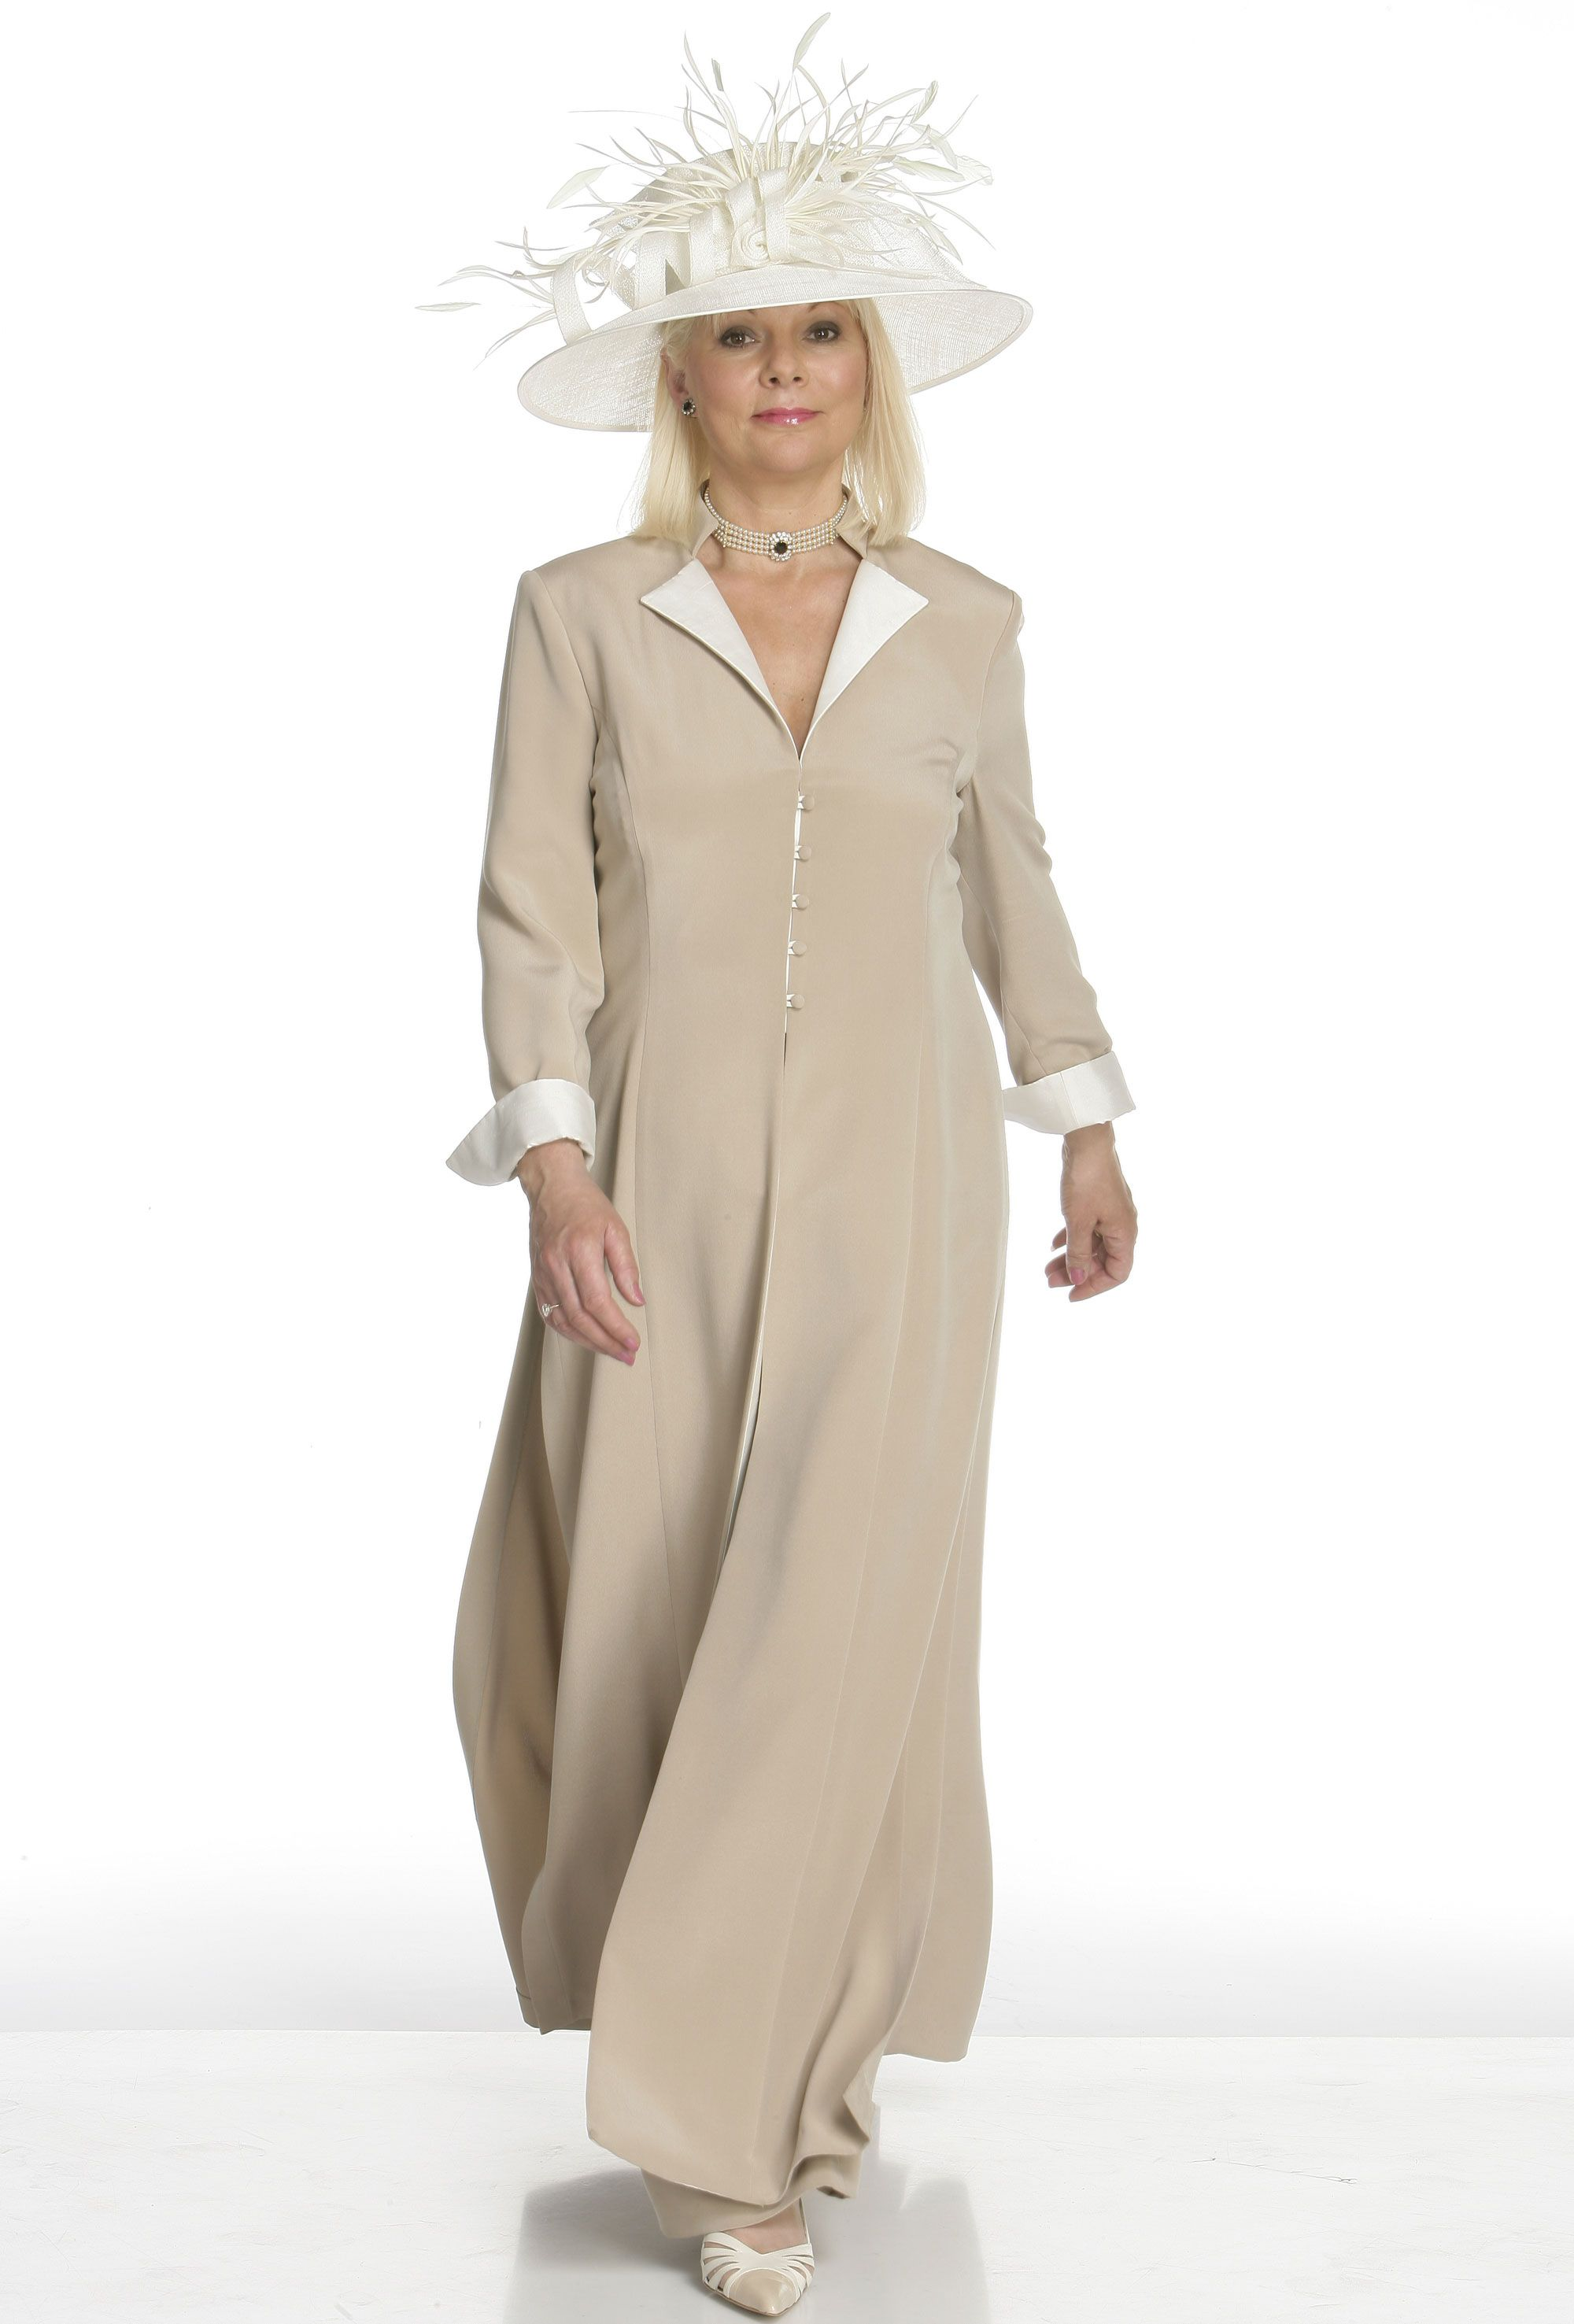 Silk Coat And Trousers Joyceyoung Collection This Is One Of My Favourites Trouser Suitstrousersmother The Bridedress Ideasfascinatorsmy Favouritewedding